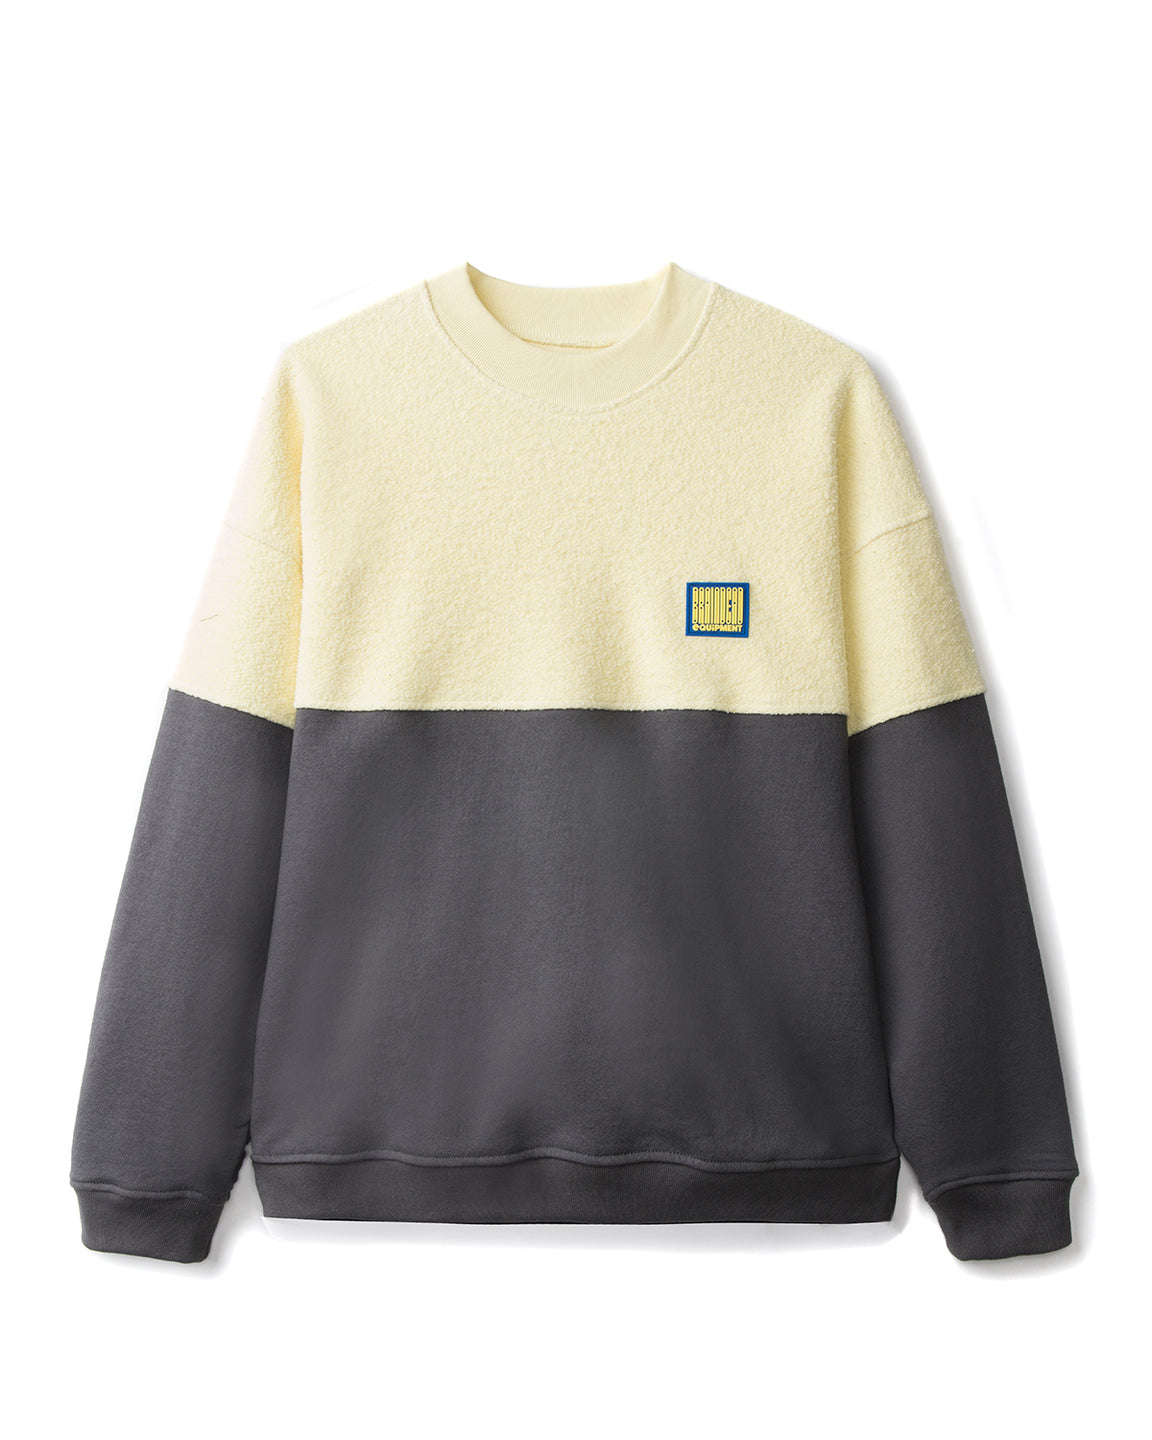 Split Crew Neck - Lemon/Warm Grey